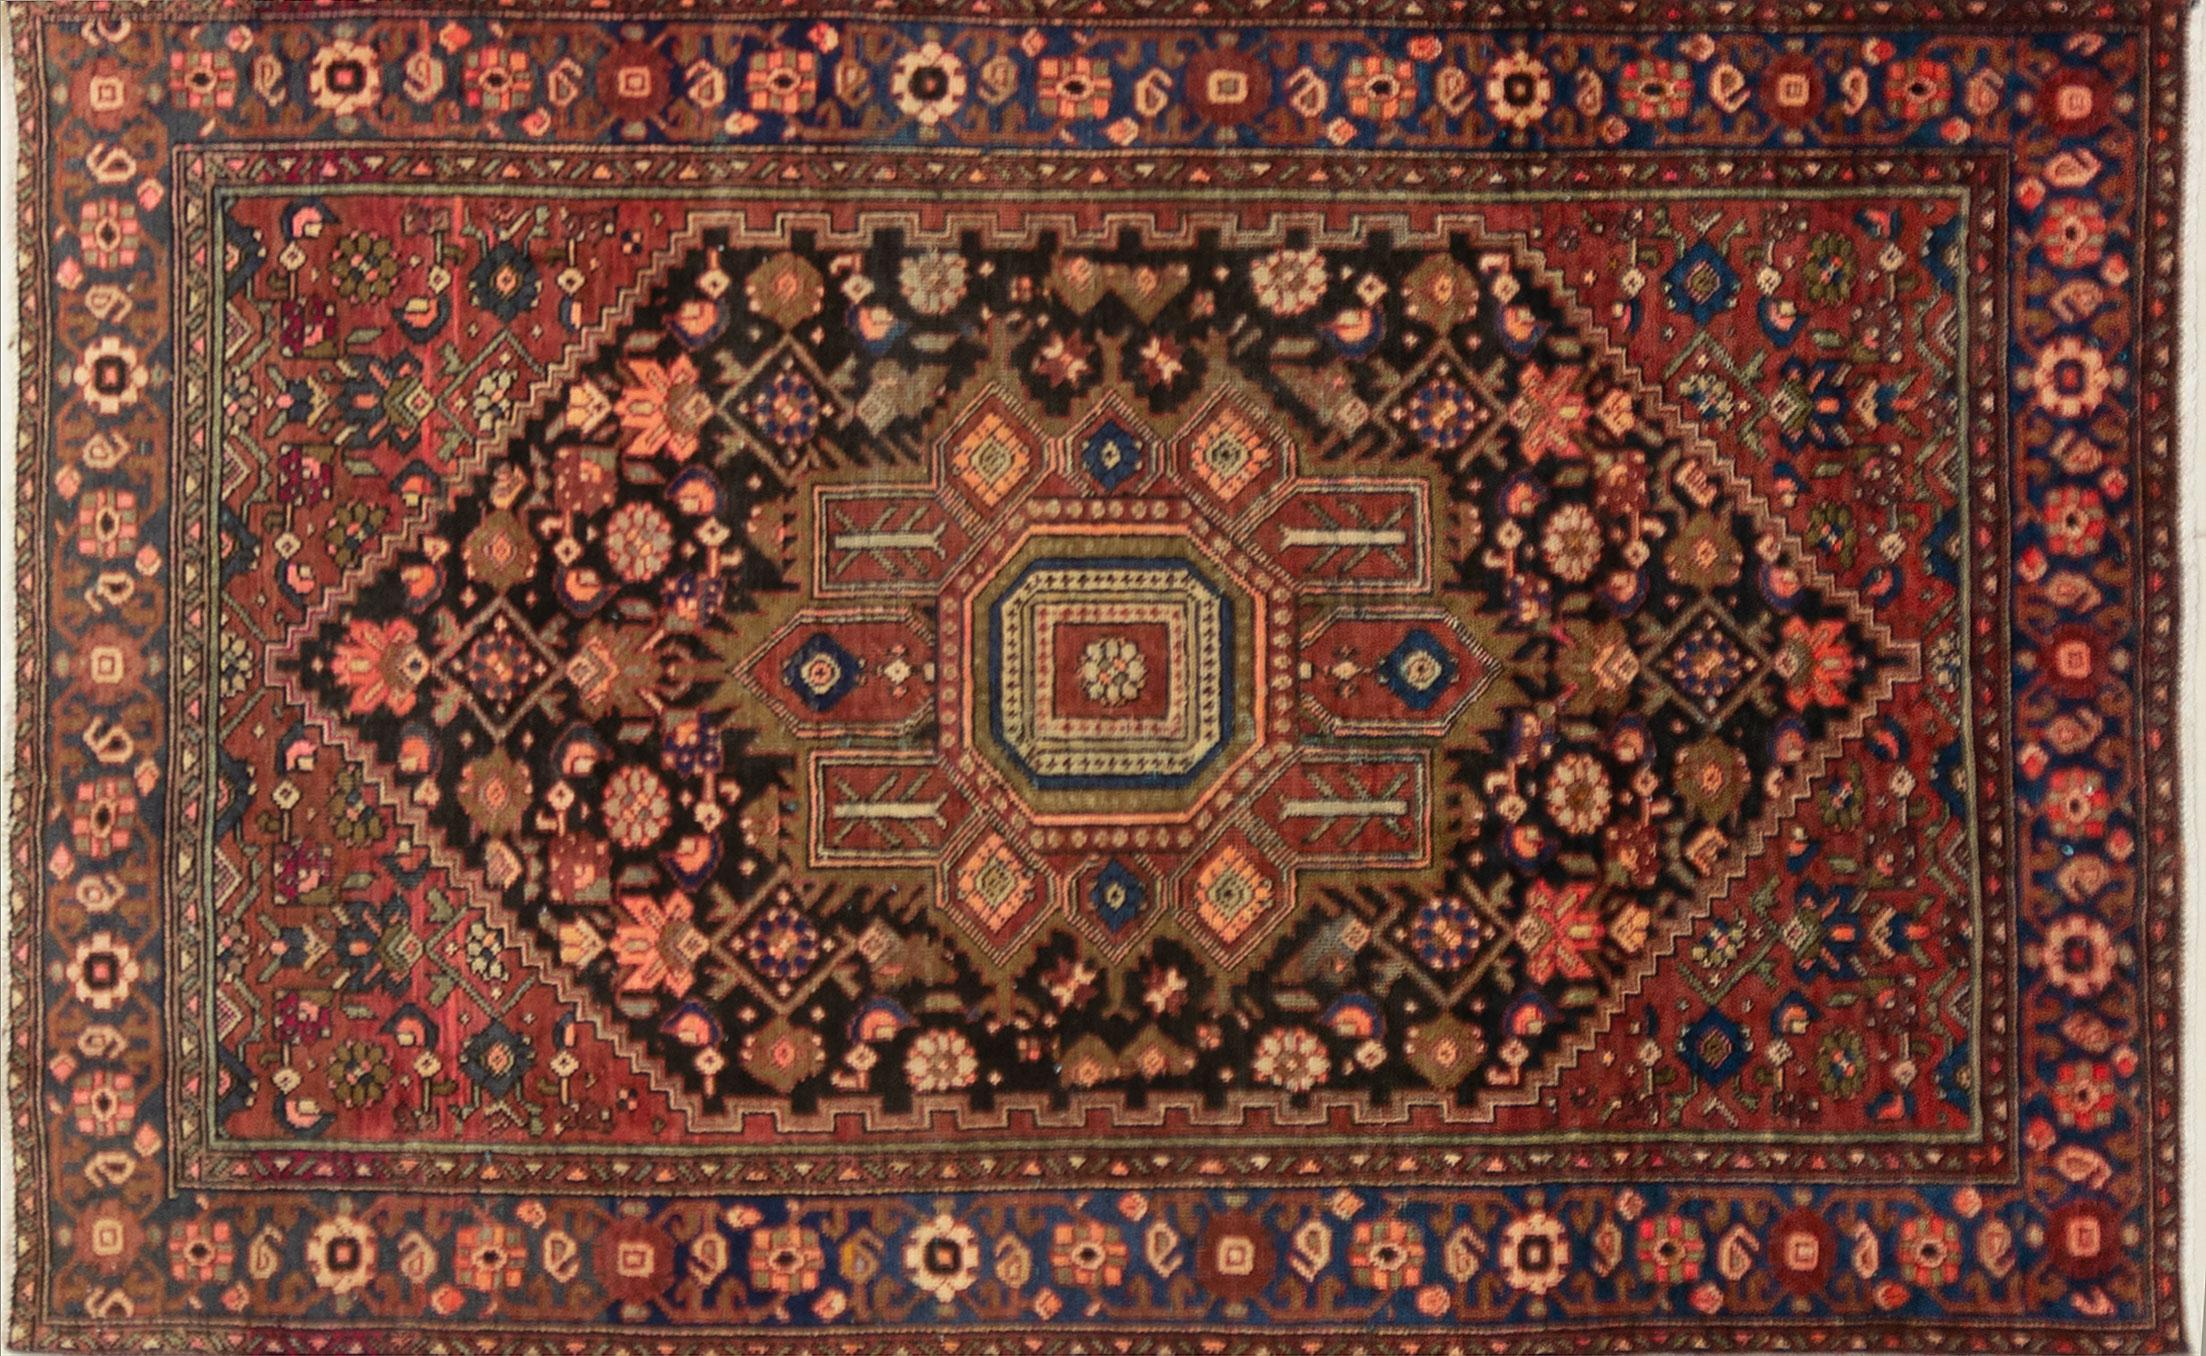 A Persian Hand Knotted Zanjan Rug, 203 x 135